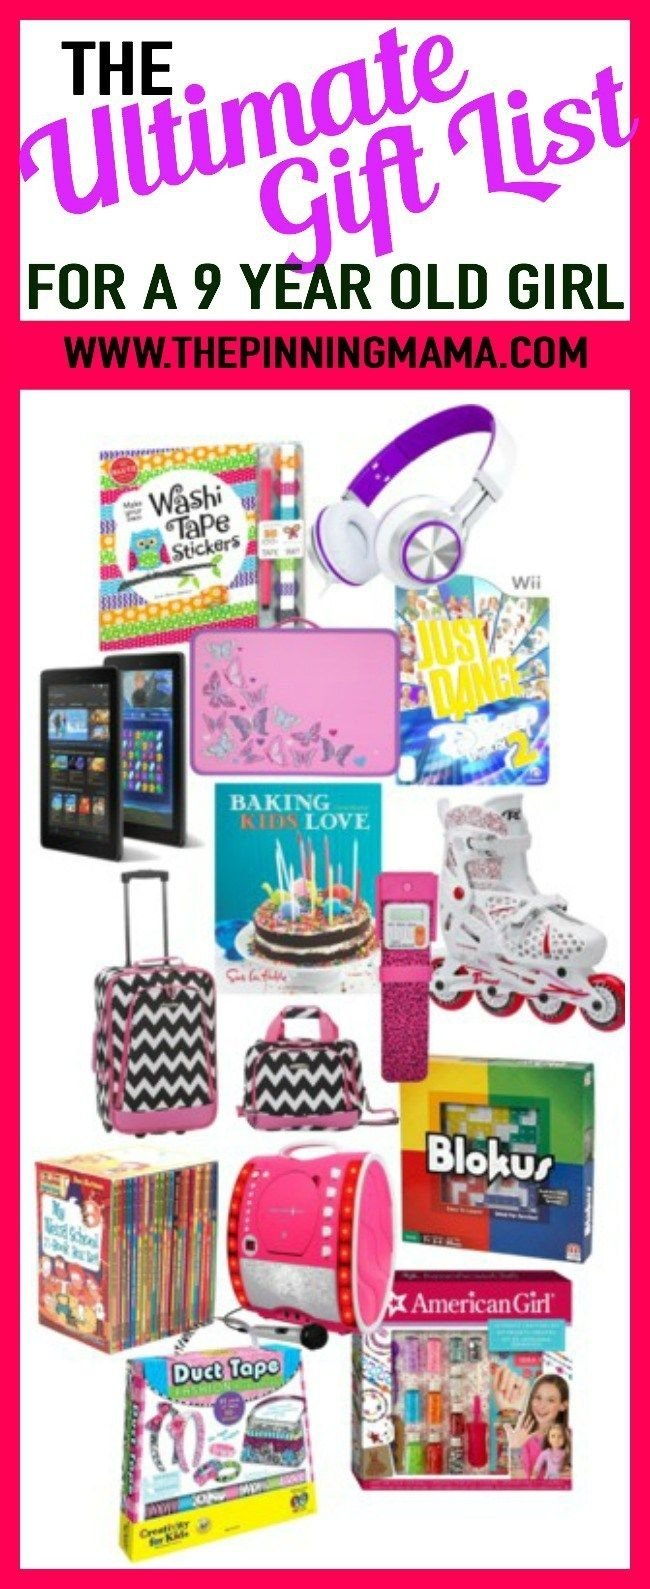 10 Awesome Gift Ideas For 6 Year Old Girls the ultimate gift list for a 9 year old girl top toys girls age 9 16 2020